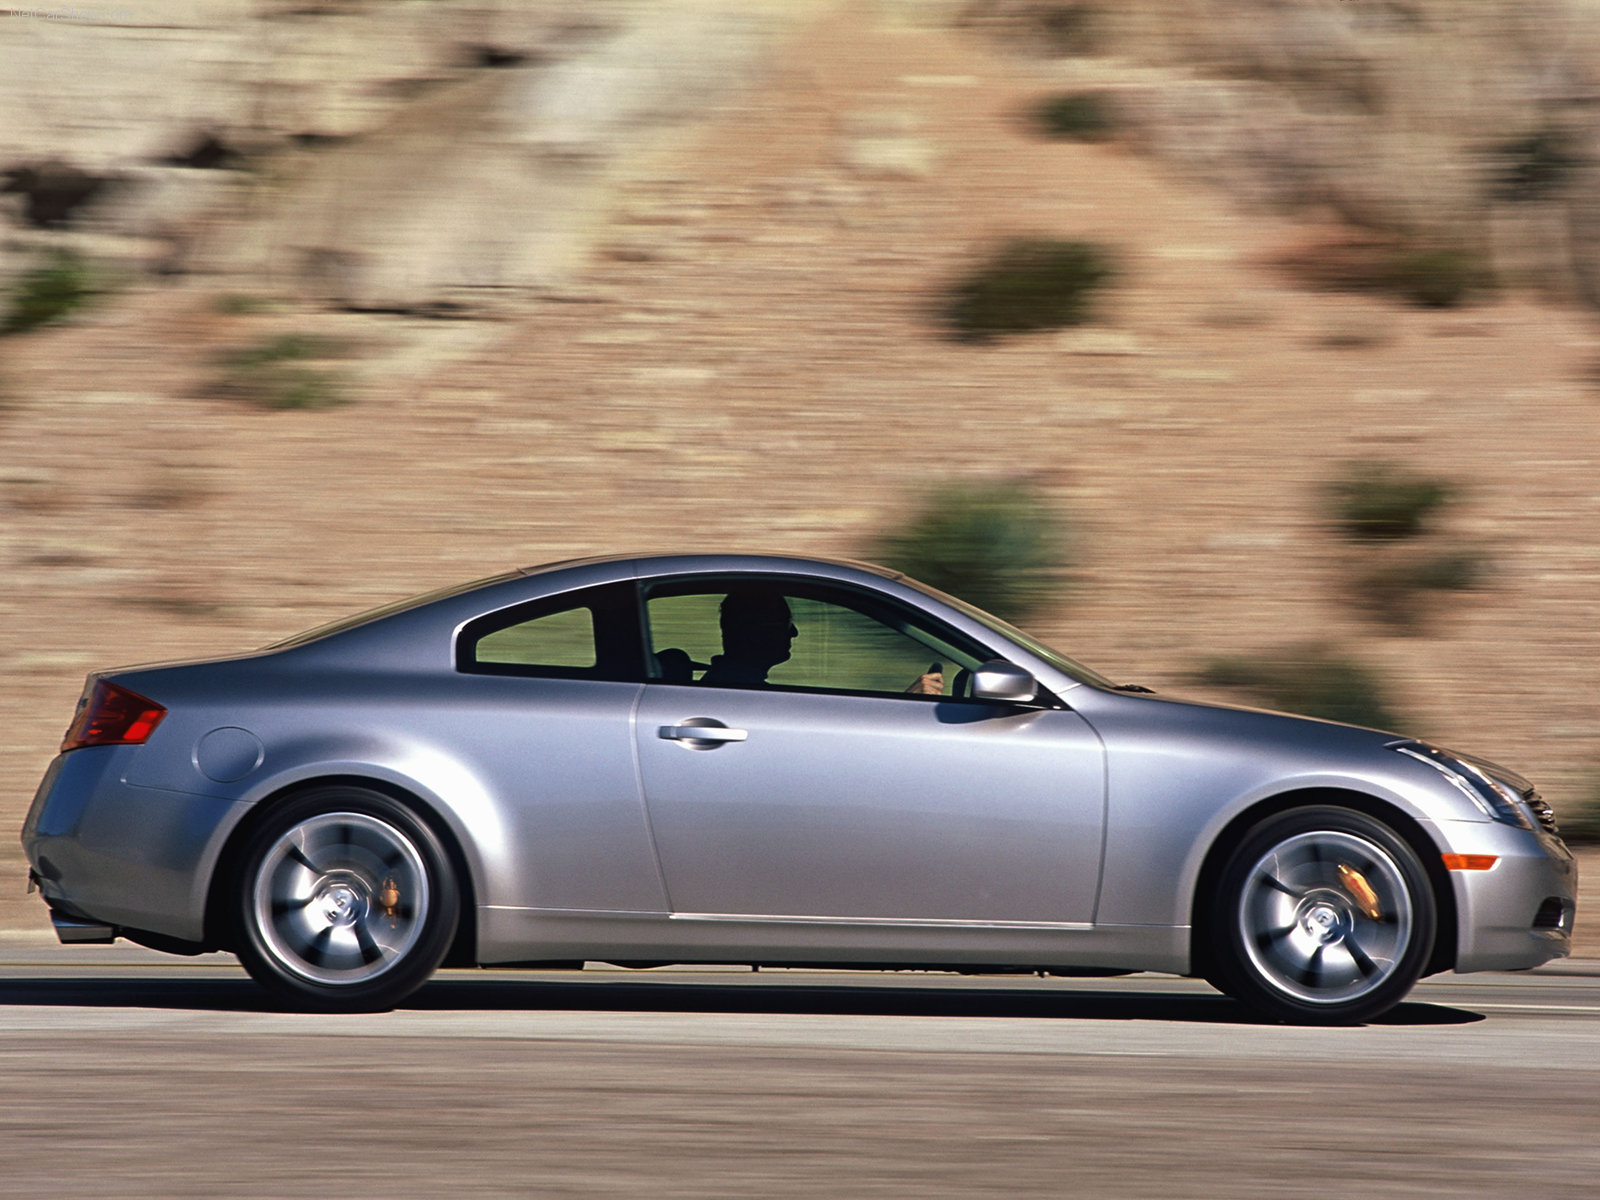 2003 Infiniti G35 Coupe Horse Car Reviews New And Used Prices Photos Videos